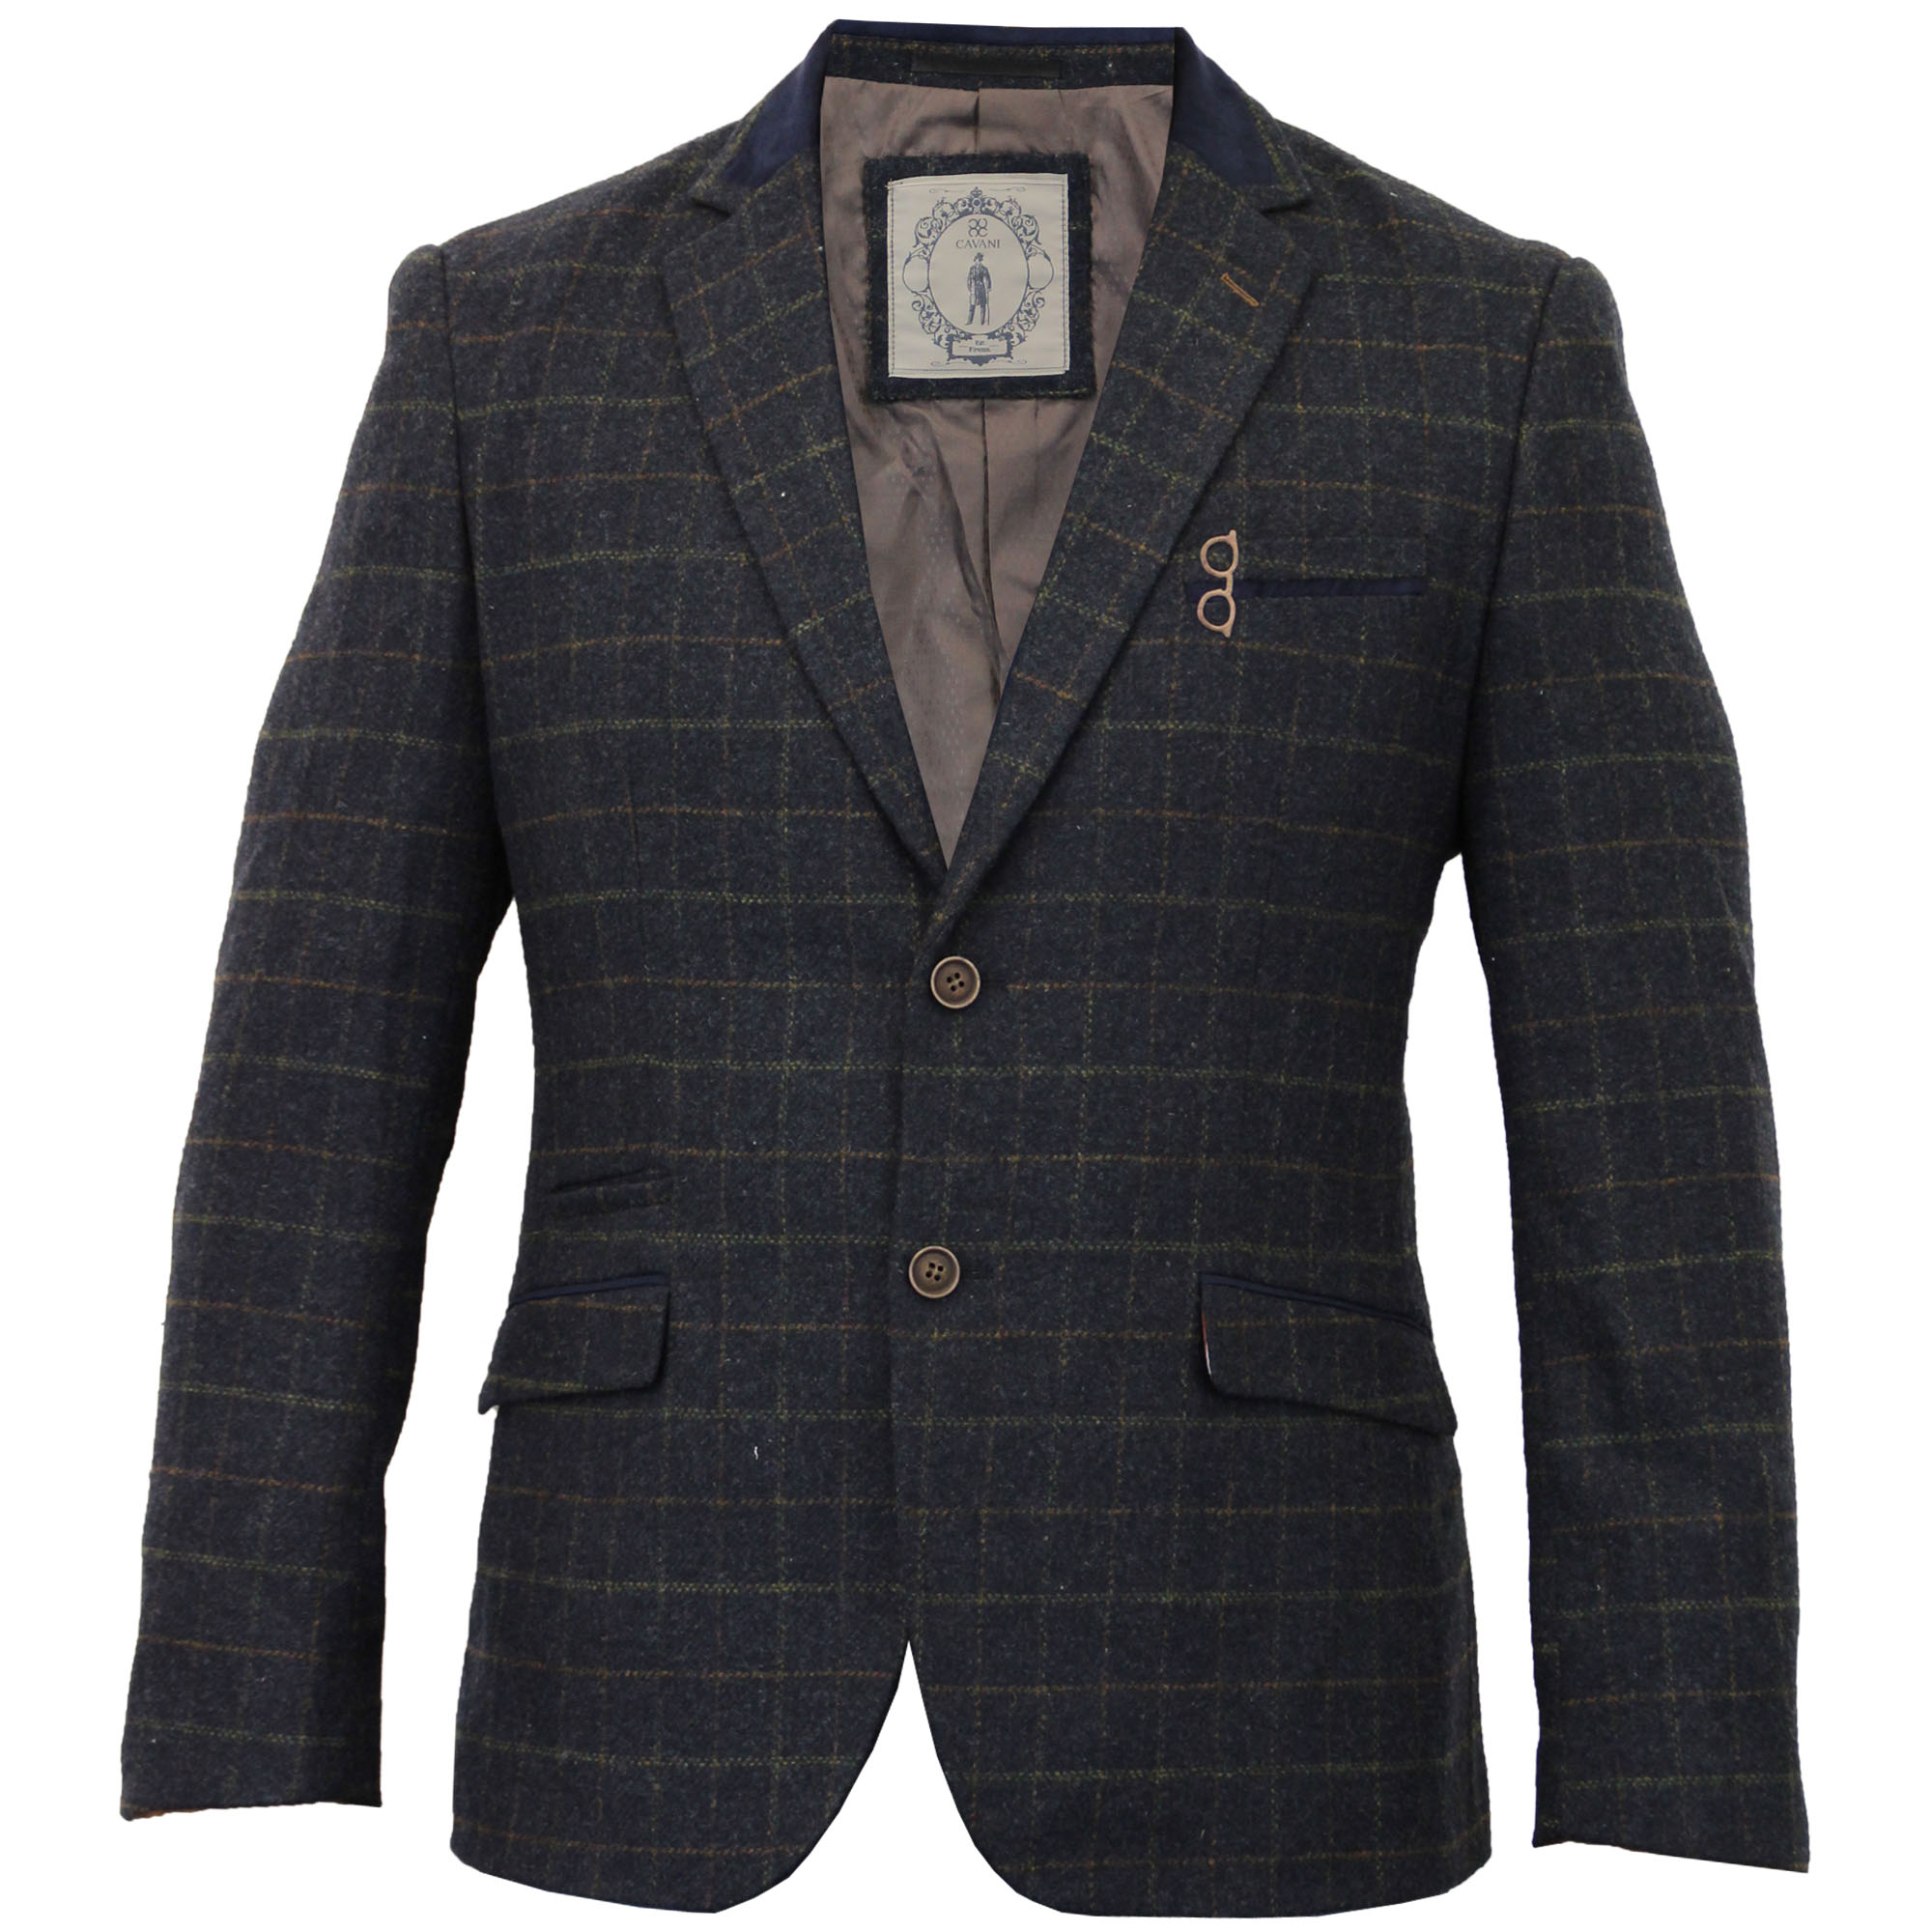 Find great deals on eBay for mens wool blazer. Shop with confidence.